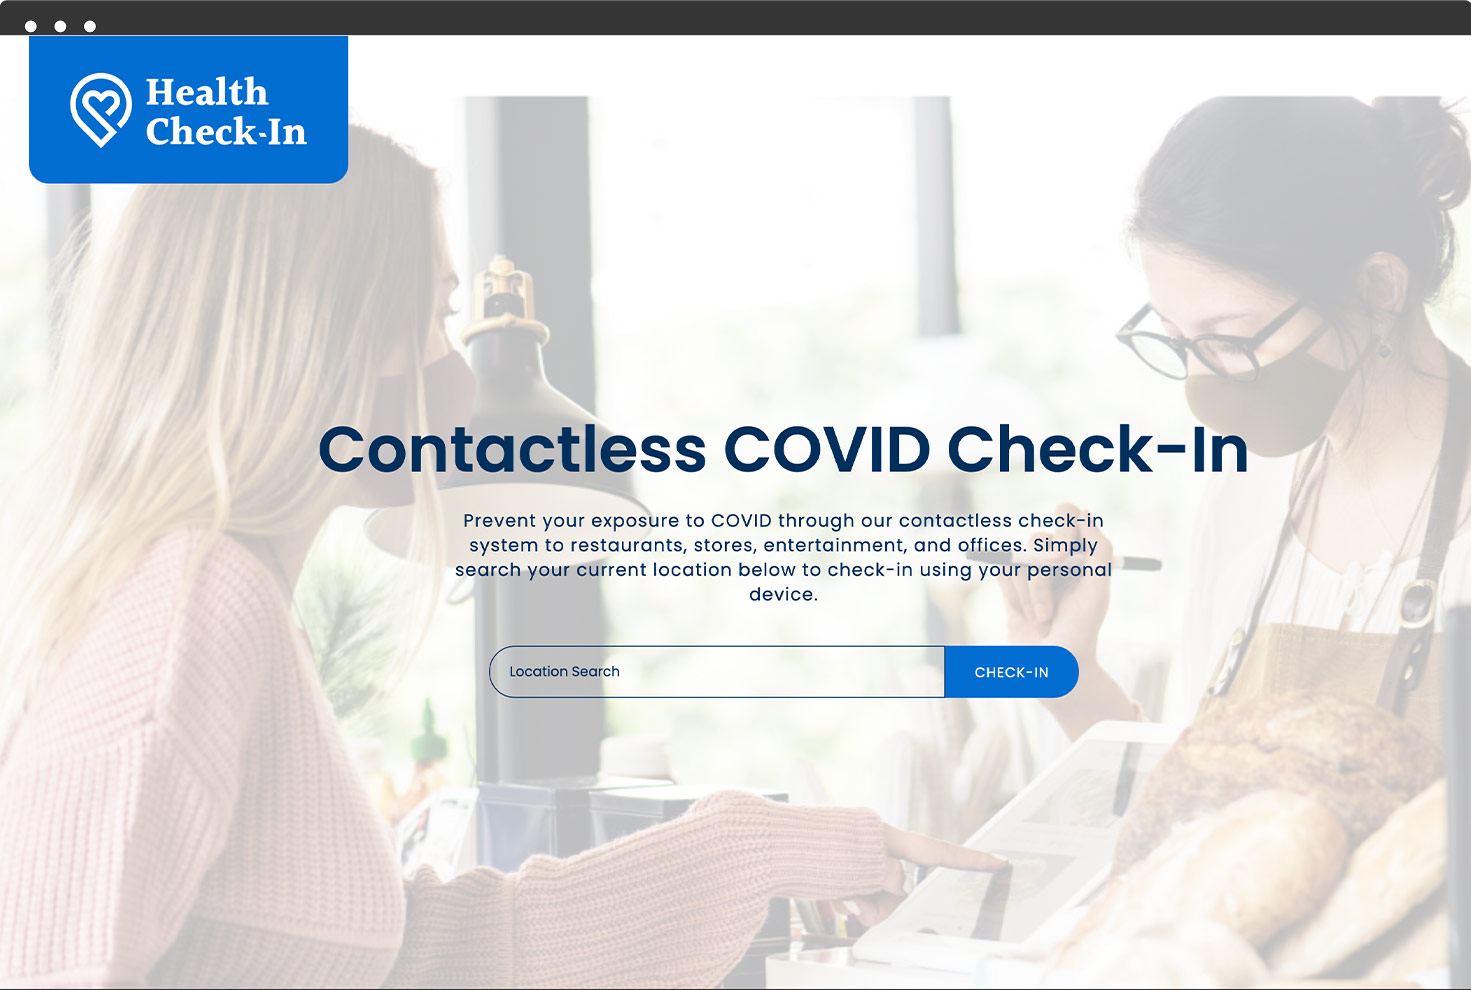 Image of Health Check In's Website